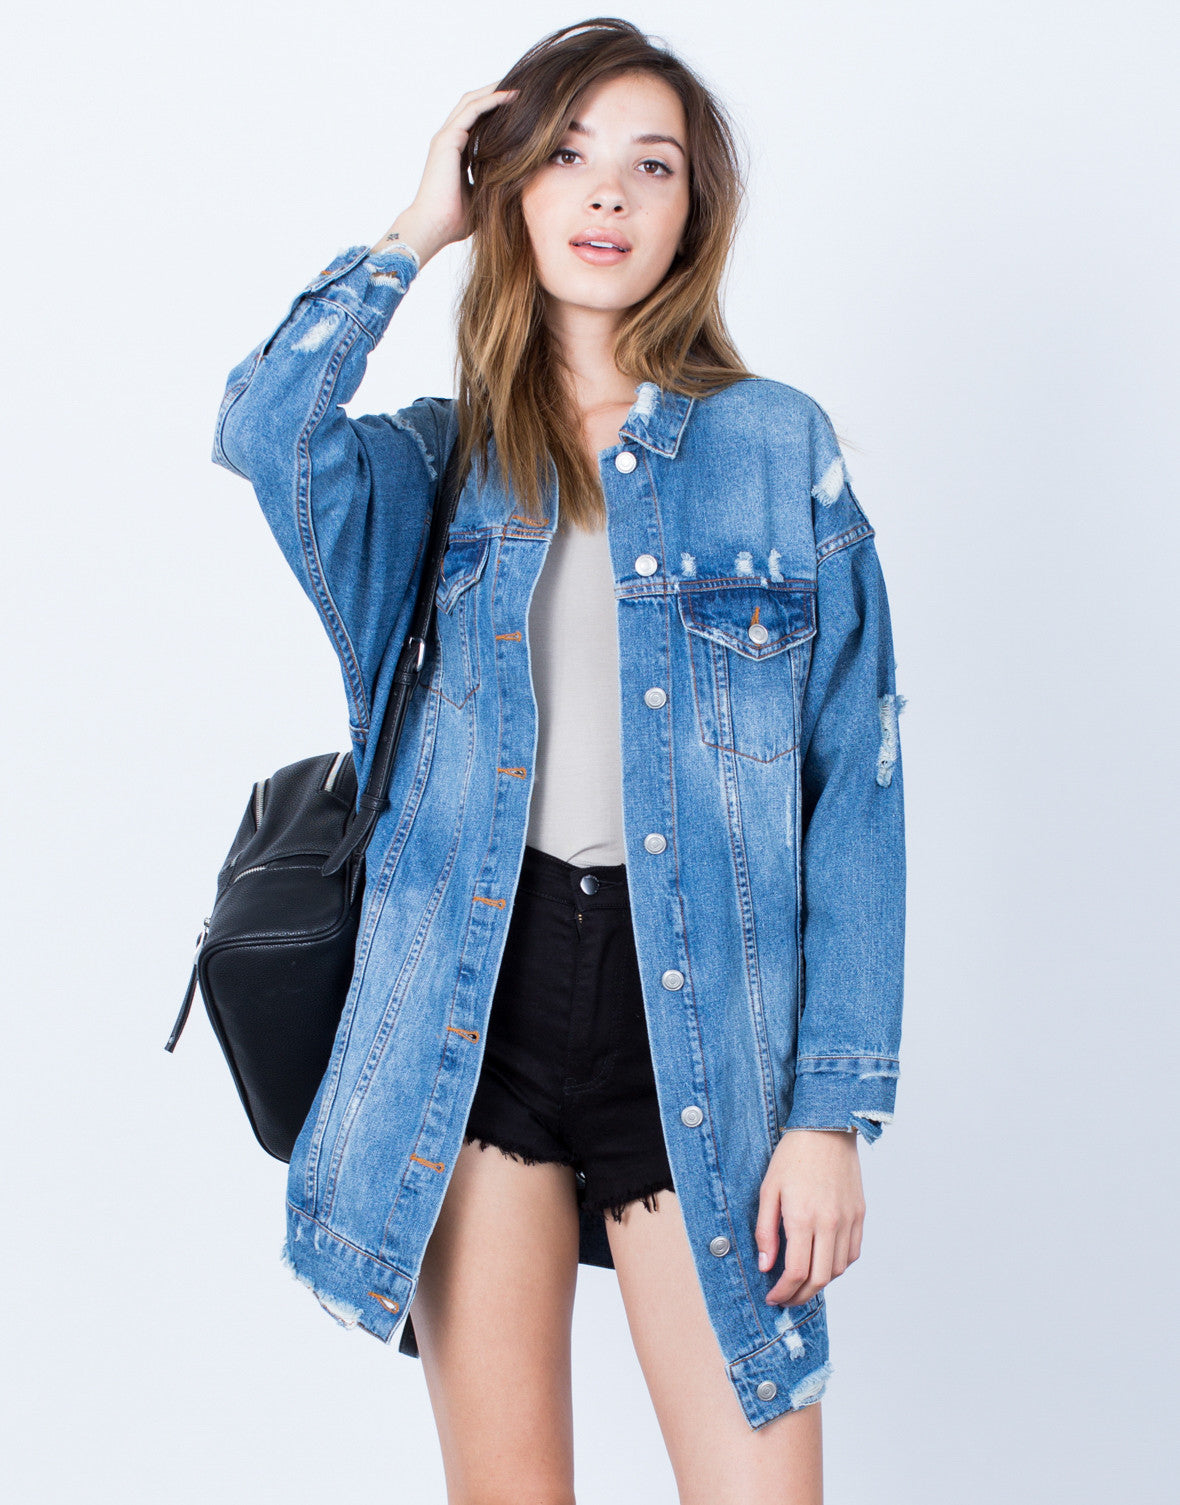 b0265bcbd559 Torn Up Oversized Denim Jacket - Destroyed Blue Denim Jacket ...